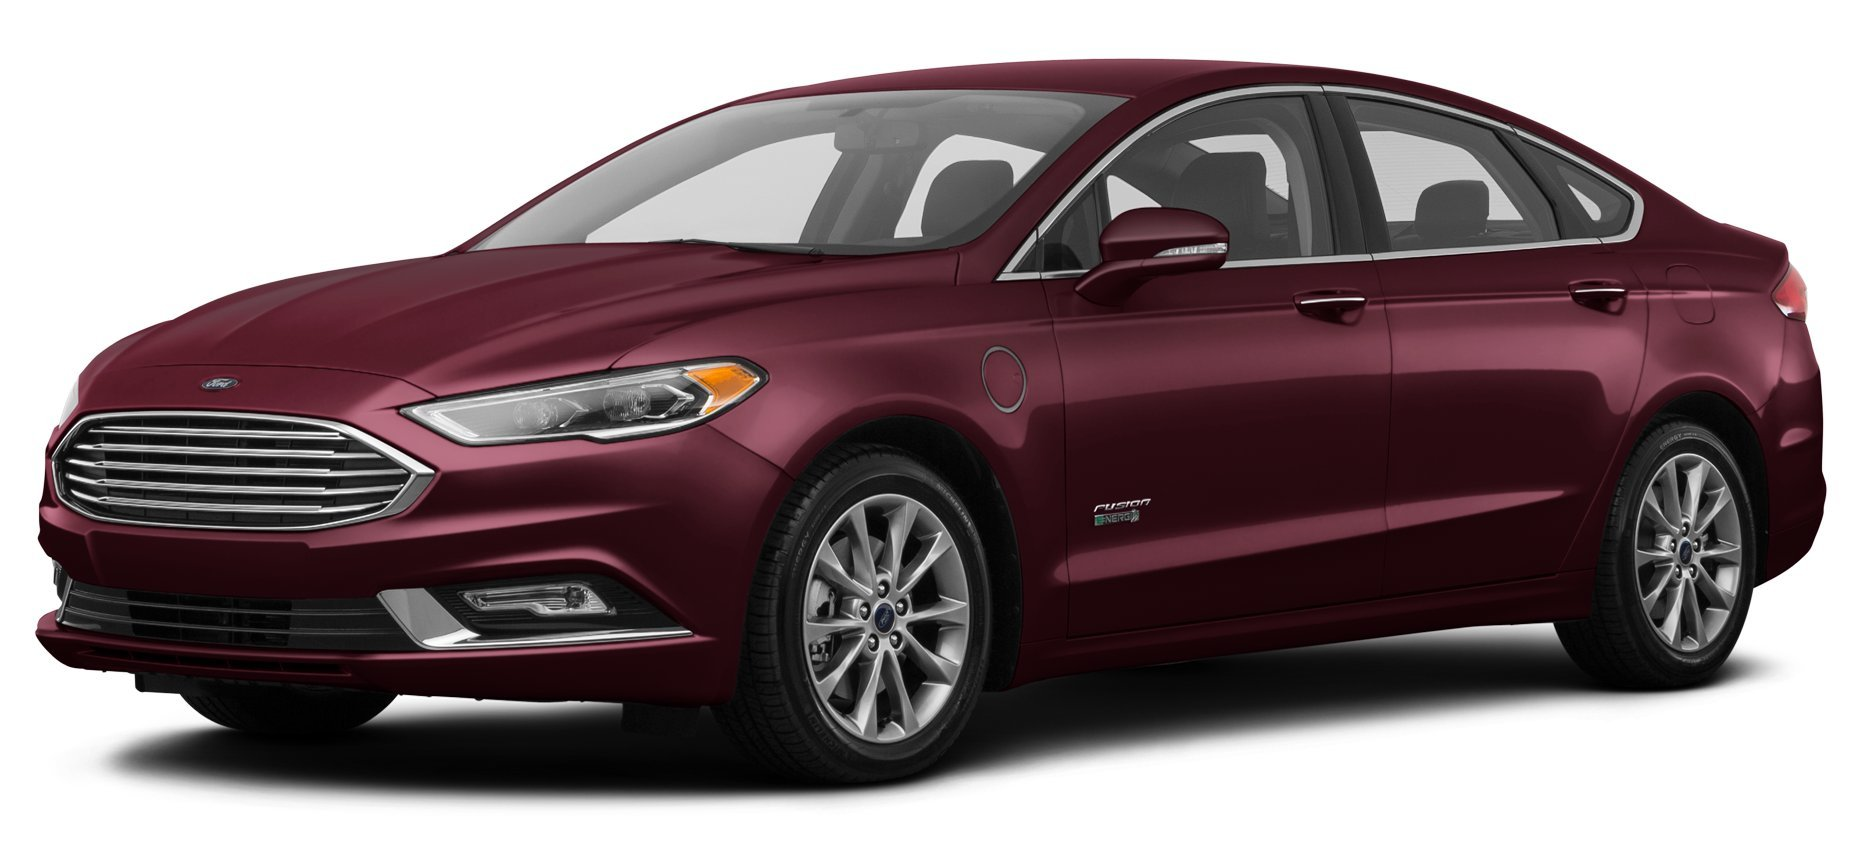 2017 ford fusion reviews images and specs vehicles. Black Bedroom Furniture Sets. Home Design Ideas